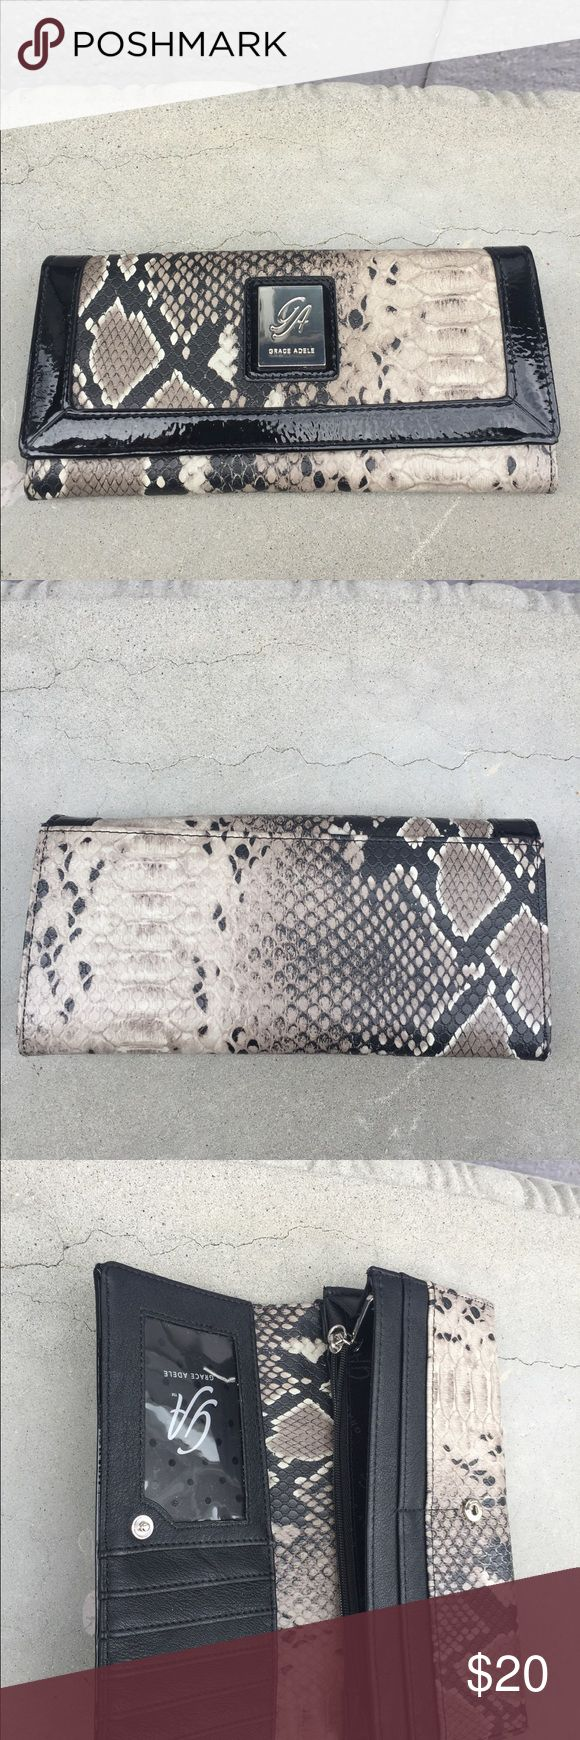 Grace Adele Contrast Python Wallet Grace Adele Wallet. Lots of card slots & room. Perfect wallet style. EUC. Needs a new loving home. Bundle up & save 15% off or make me an offer! Happy Poshing! Grace Adele Bags Wallets